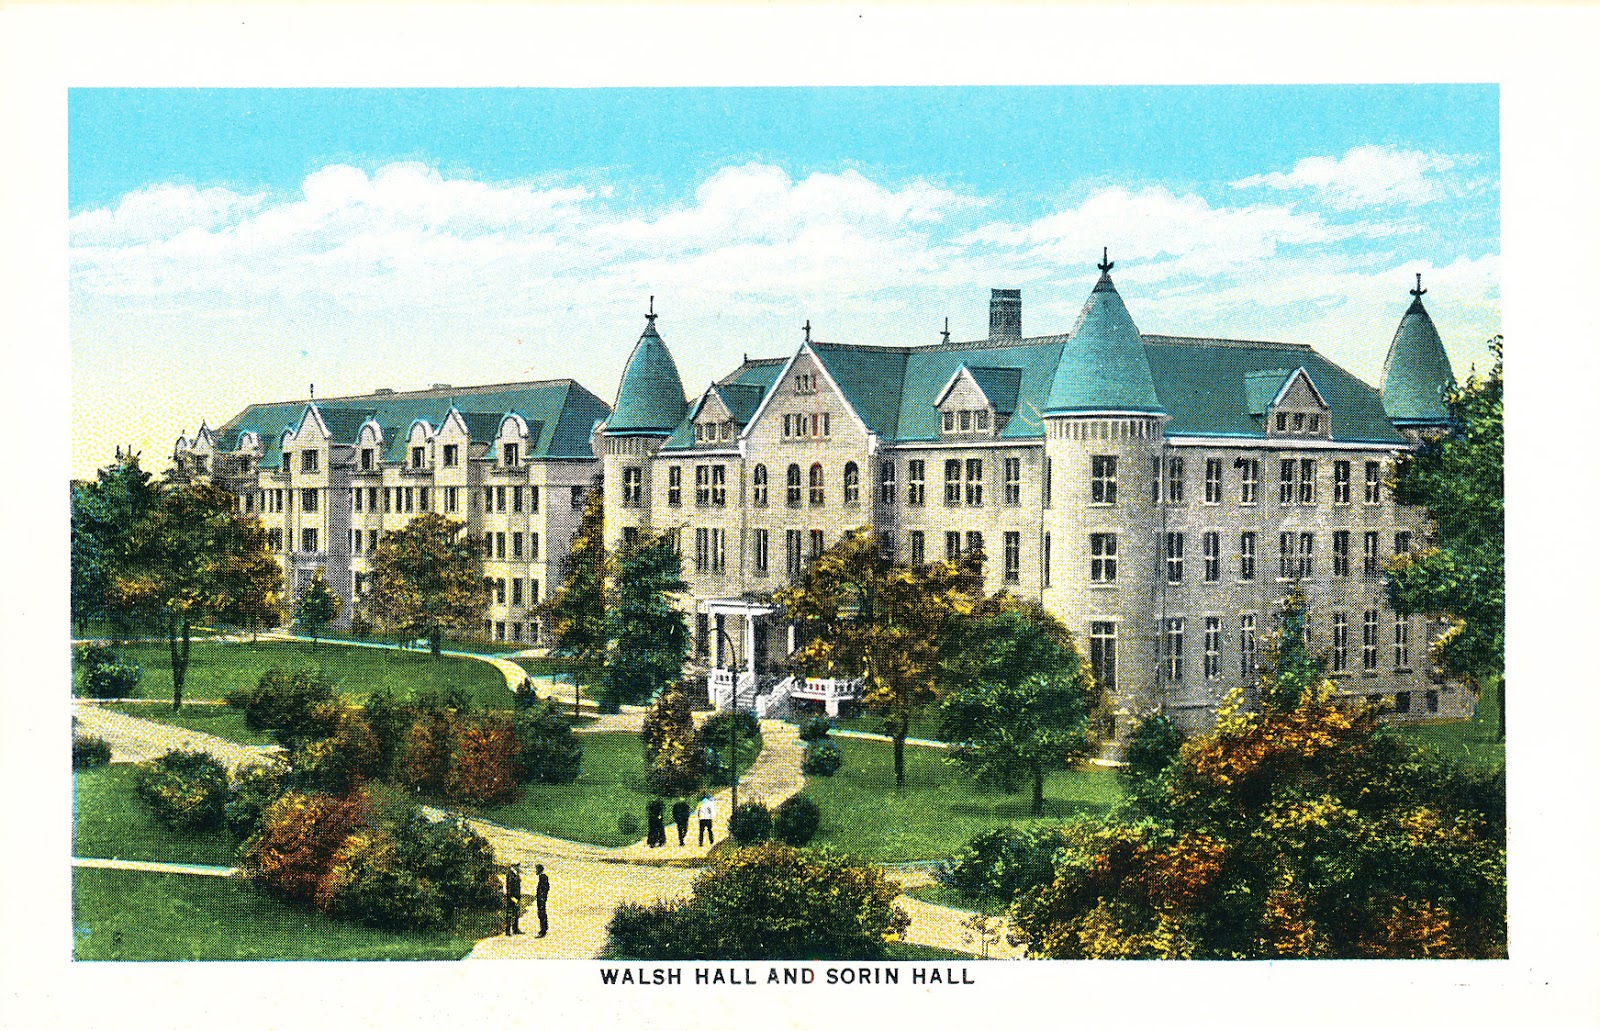 The University Of Notre Dame Class Of 1969 Blog A Photo History Of Notre Dame S Dorms From 1882 To 1969